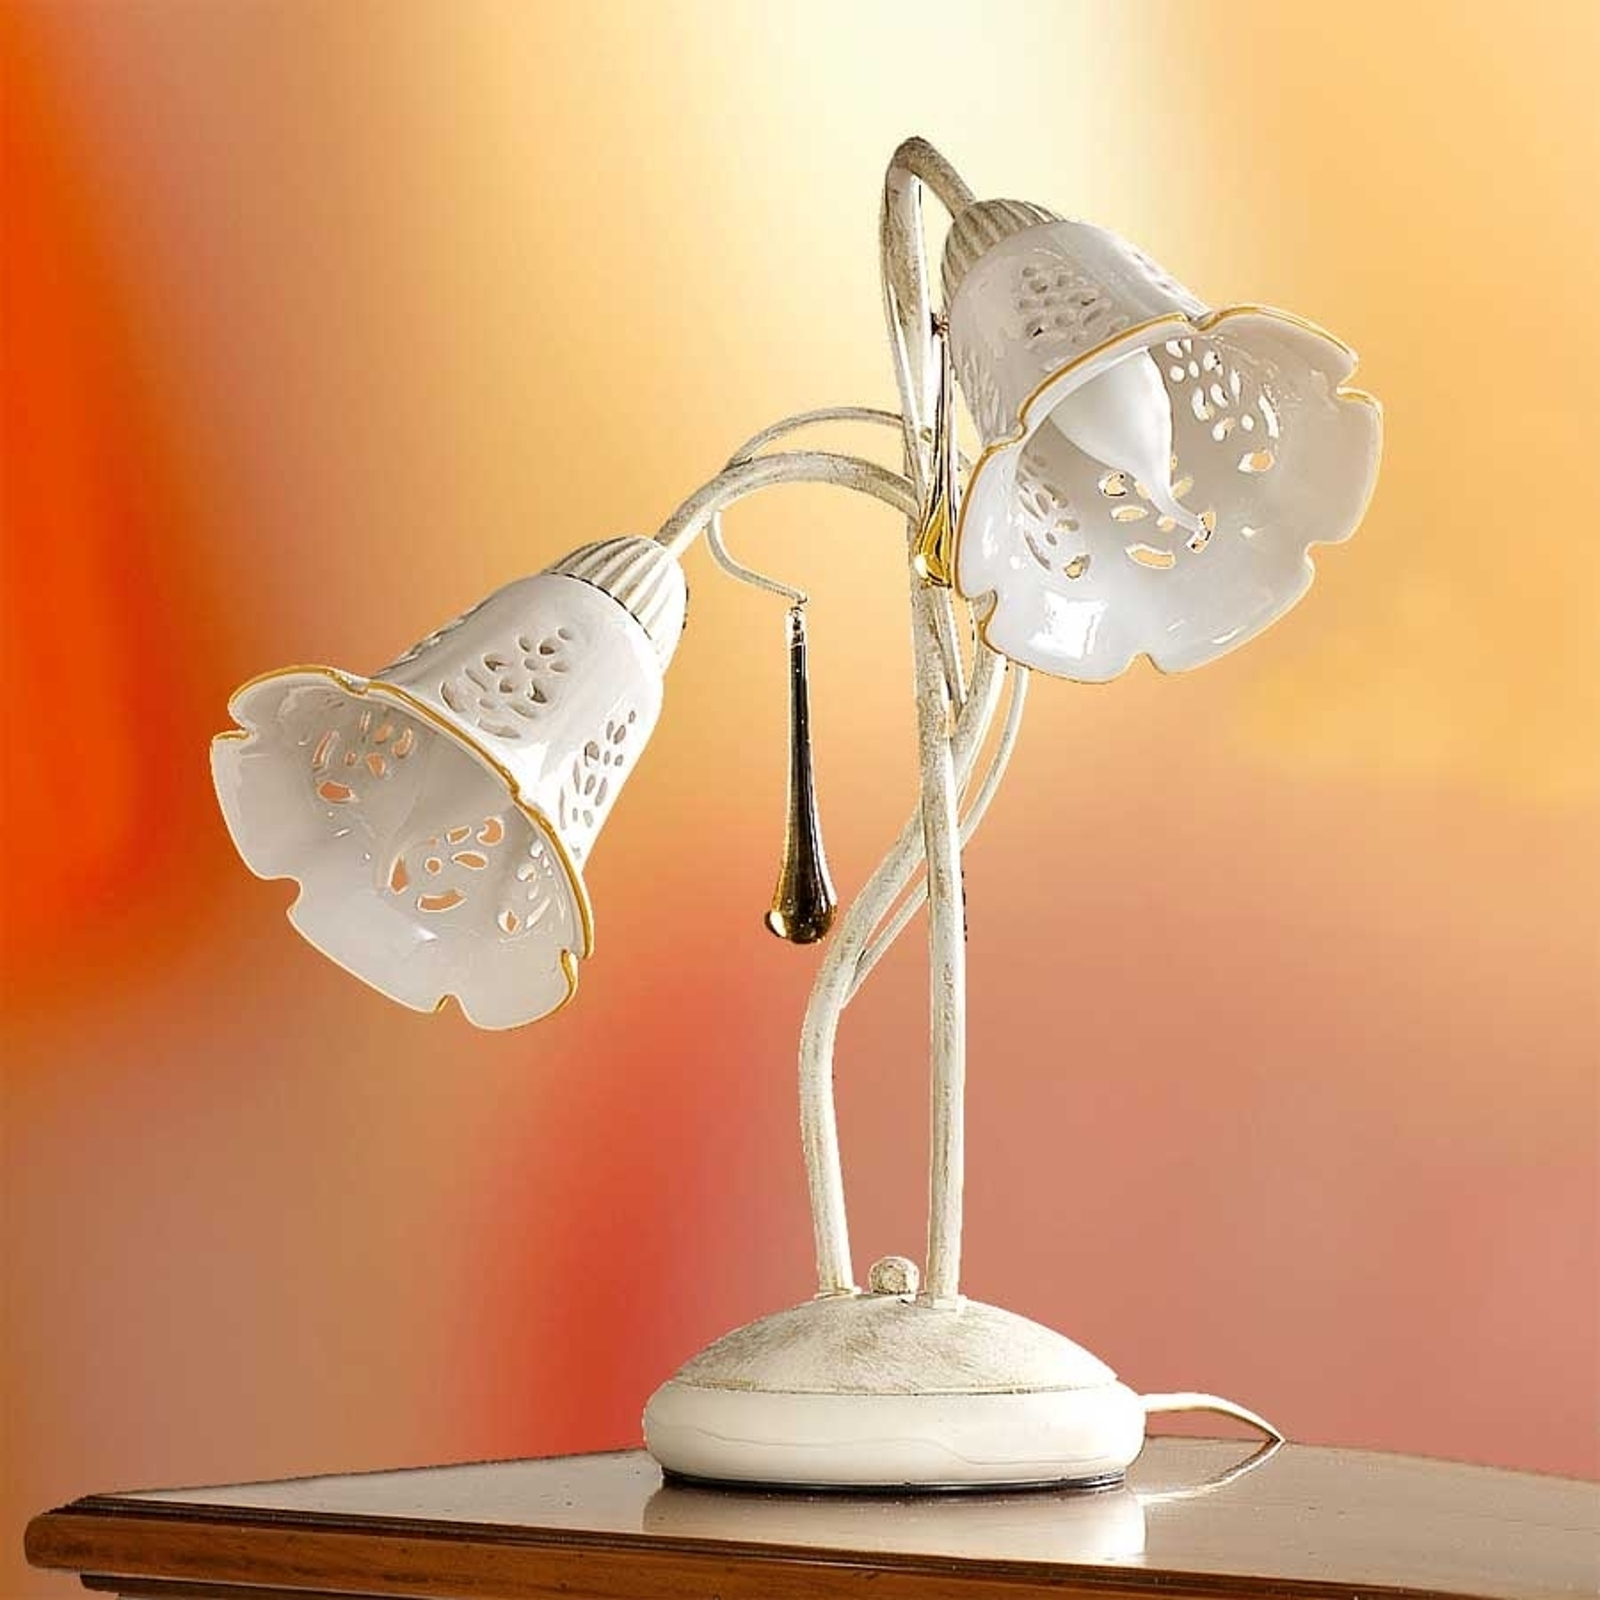 Fabulous GOCCE table lamp_2013079_1